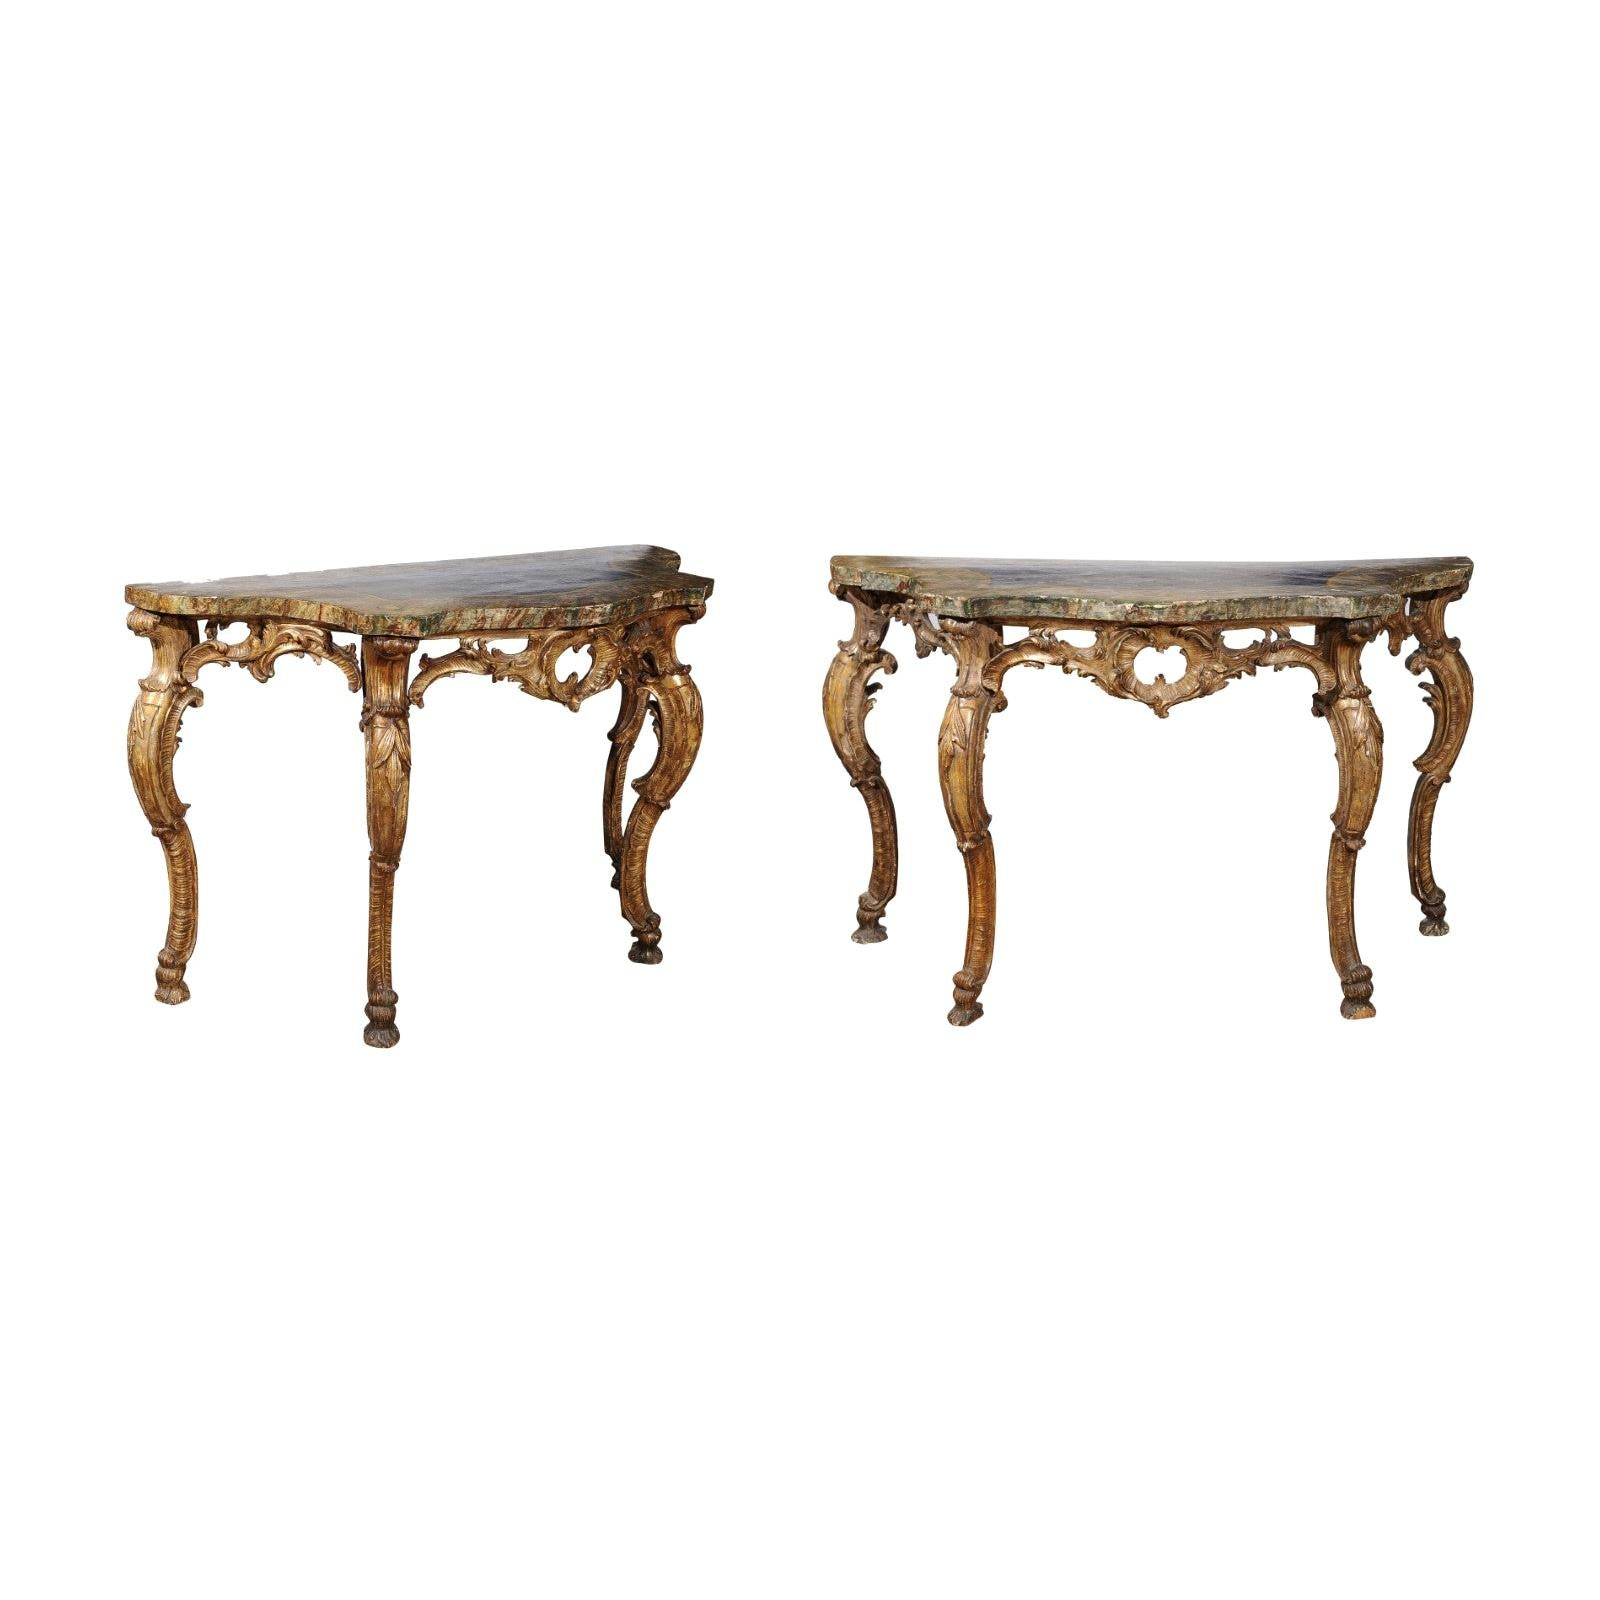 Pair of Rococo Style Giltwood Consoles with Marbleized Tops, 18th Century Italy